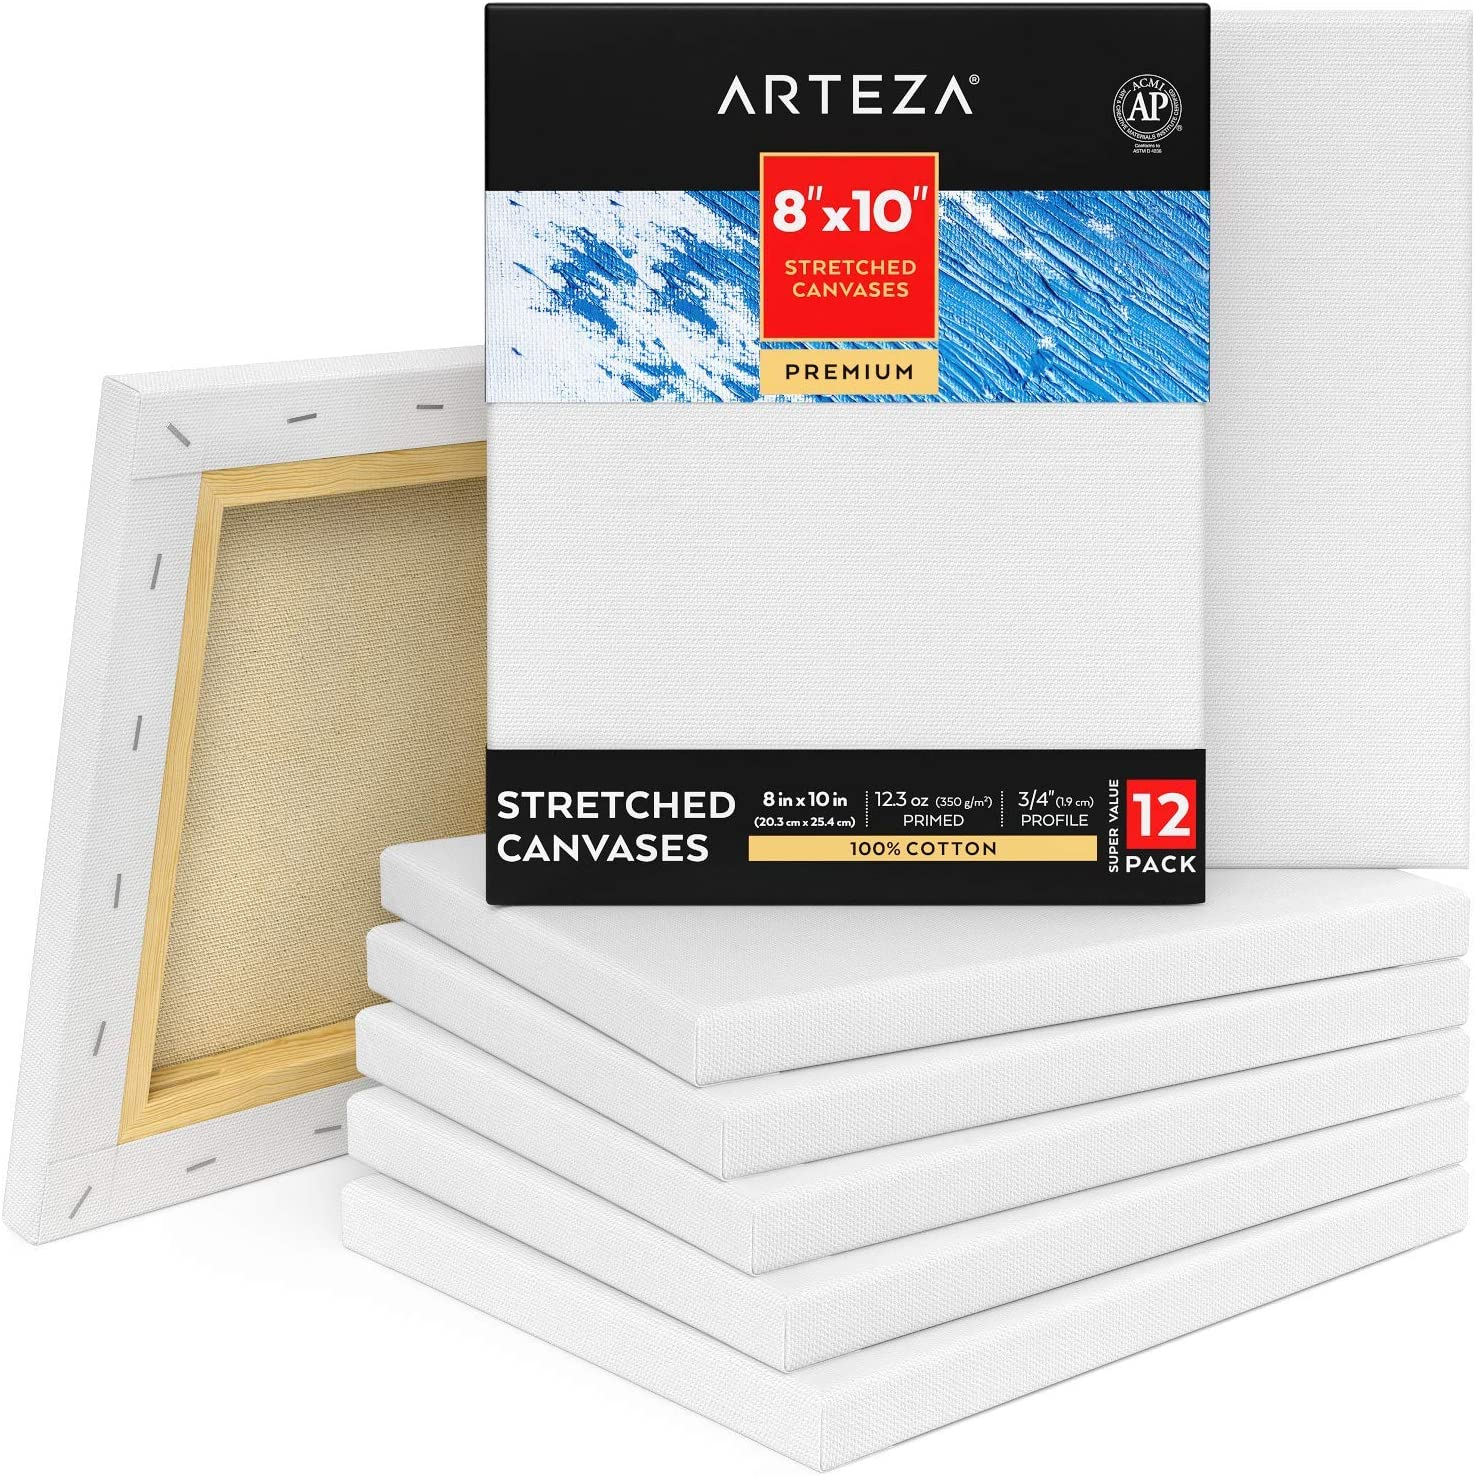 Arteza Stretched Canvas Pack Spasm price of 12 Blank Portland Mall x 10 White 8 Inches